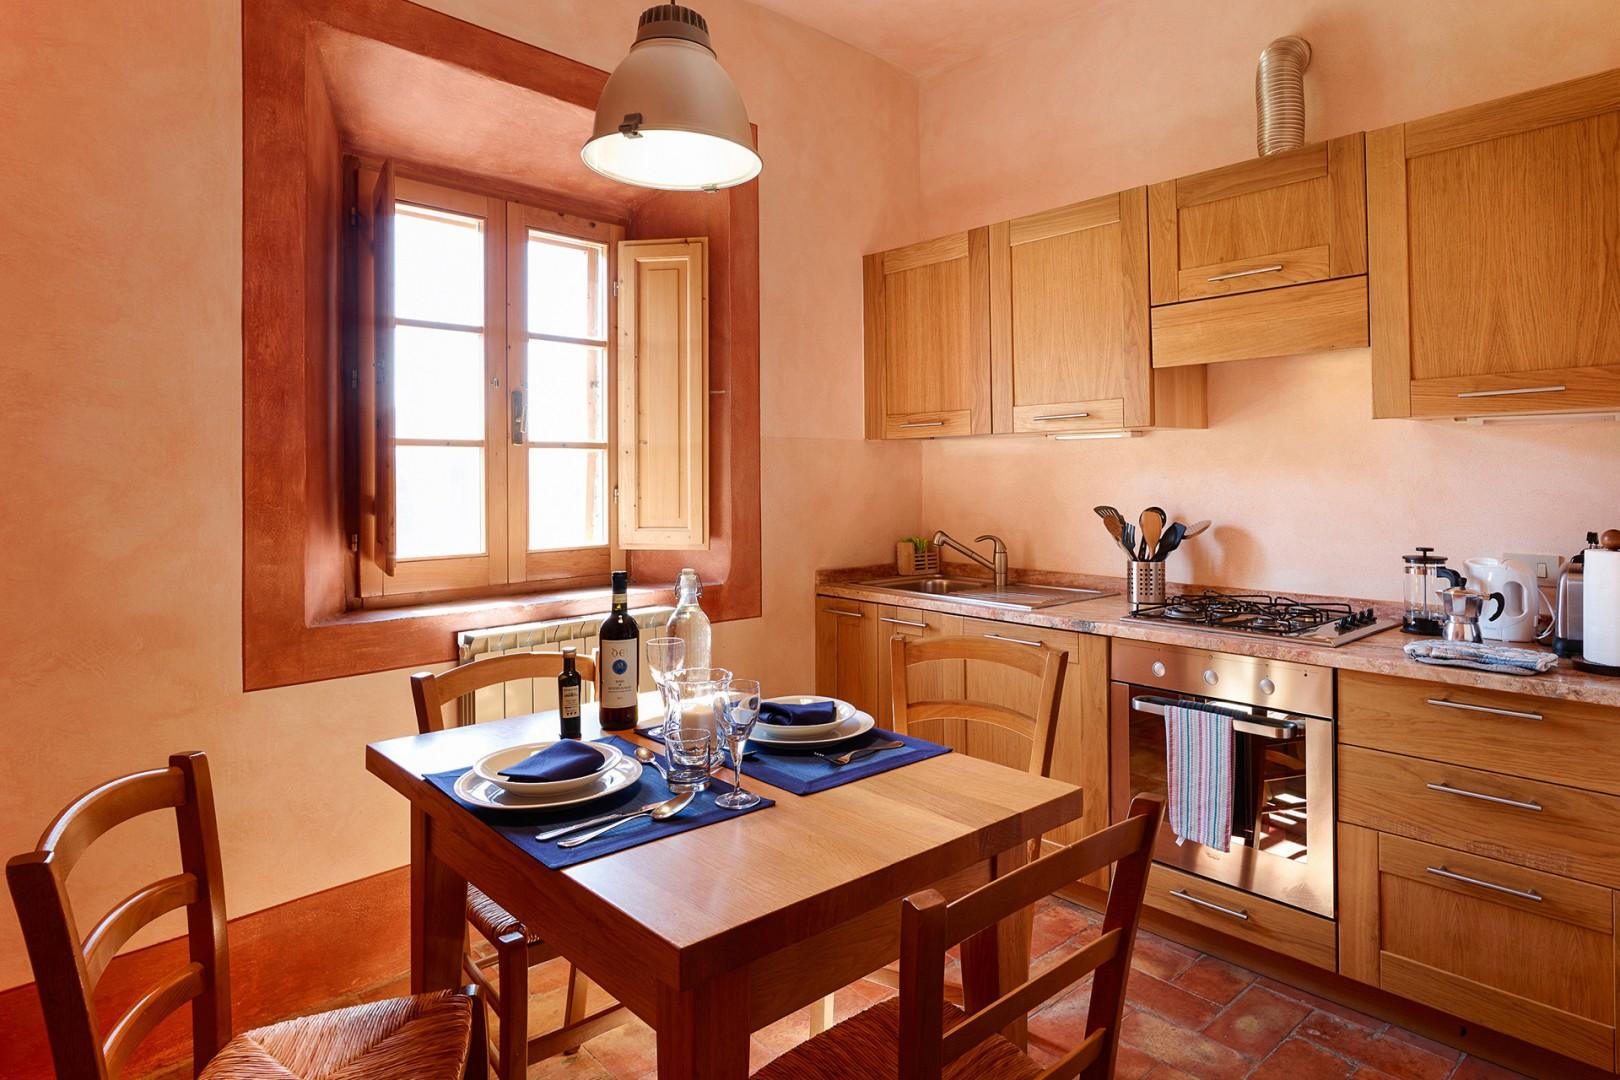 Full furnished eat-in kitchen.